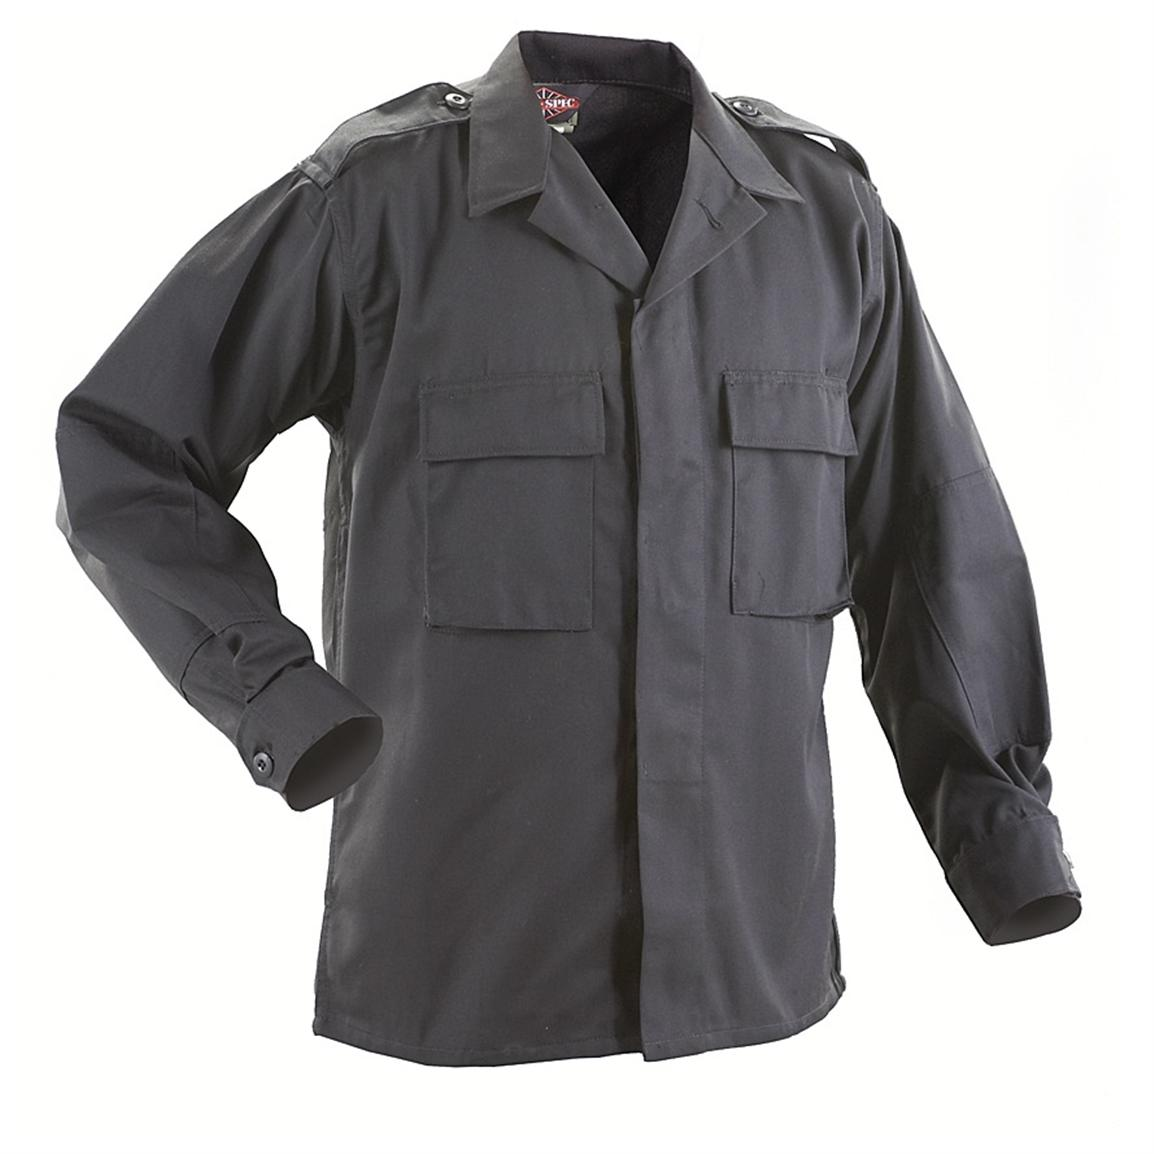 2-Pk. Men's Tru-Spec® Twill Military Surplus BDU Shirts